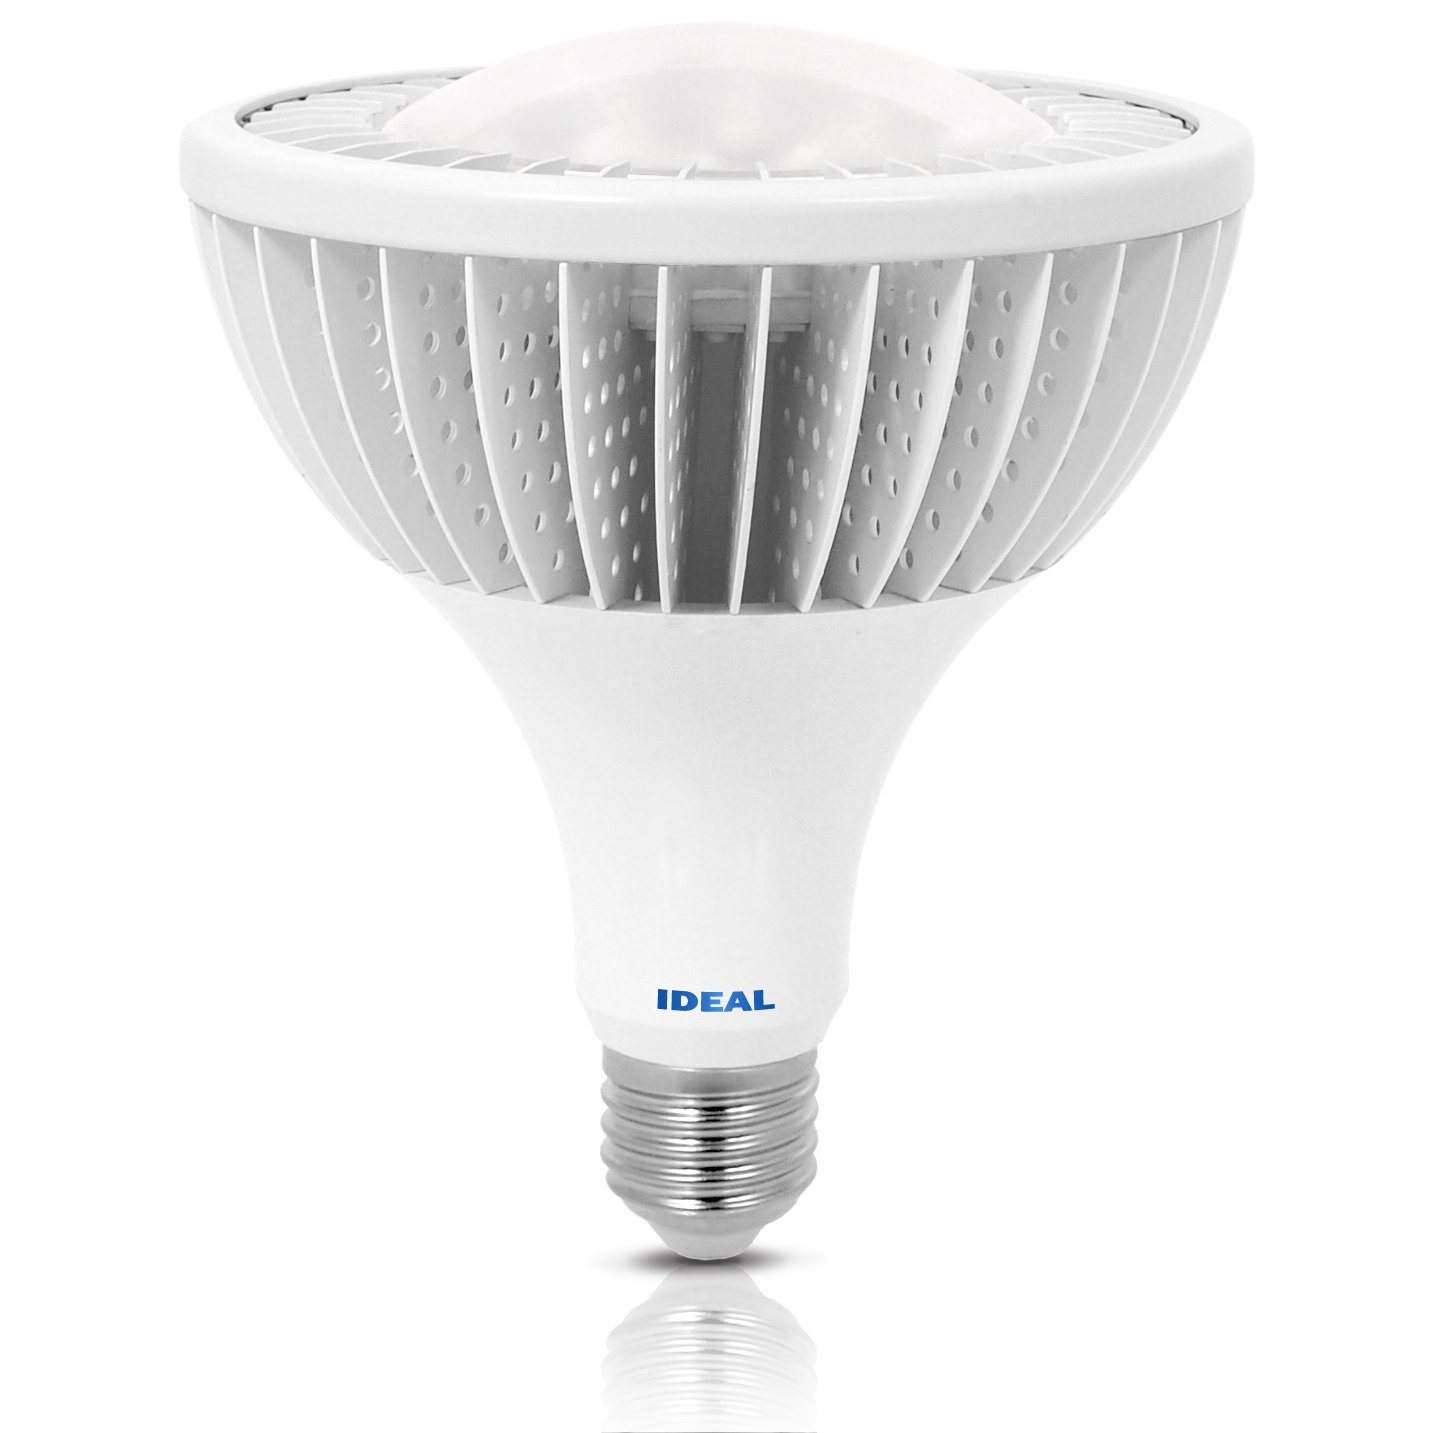 Outdoor led philip led light bulb philips u0027 a21 led is the 100w 28 b22 led light Led light bulb cost